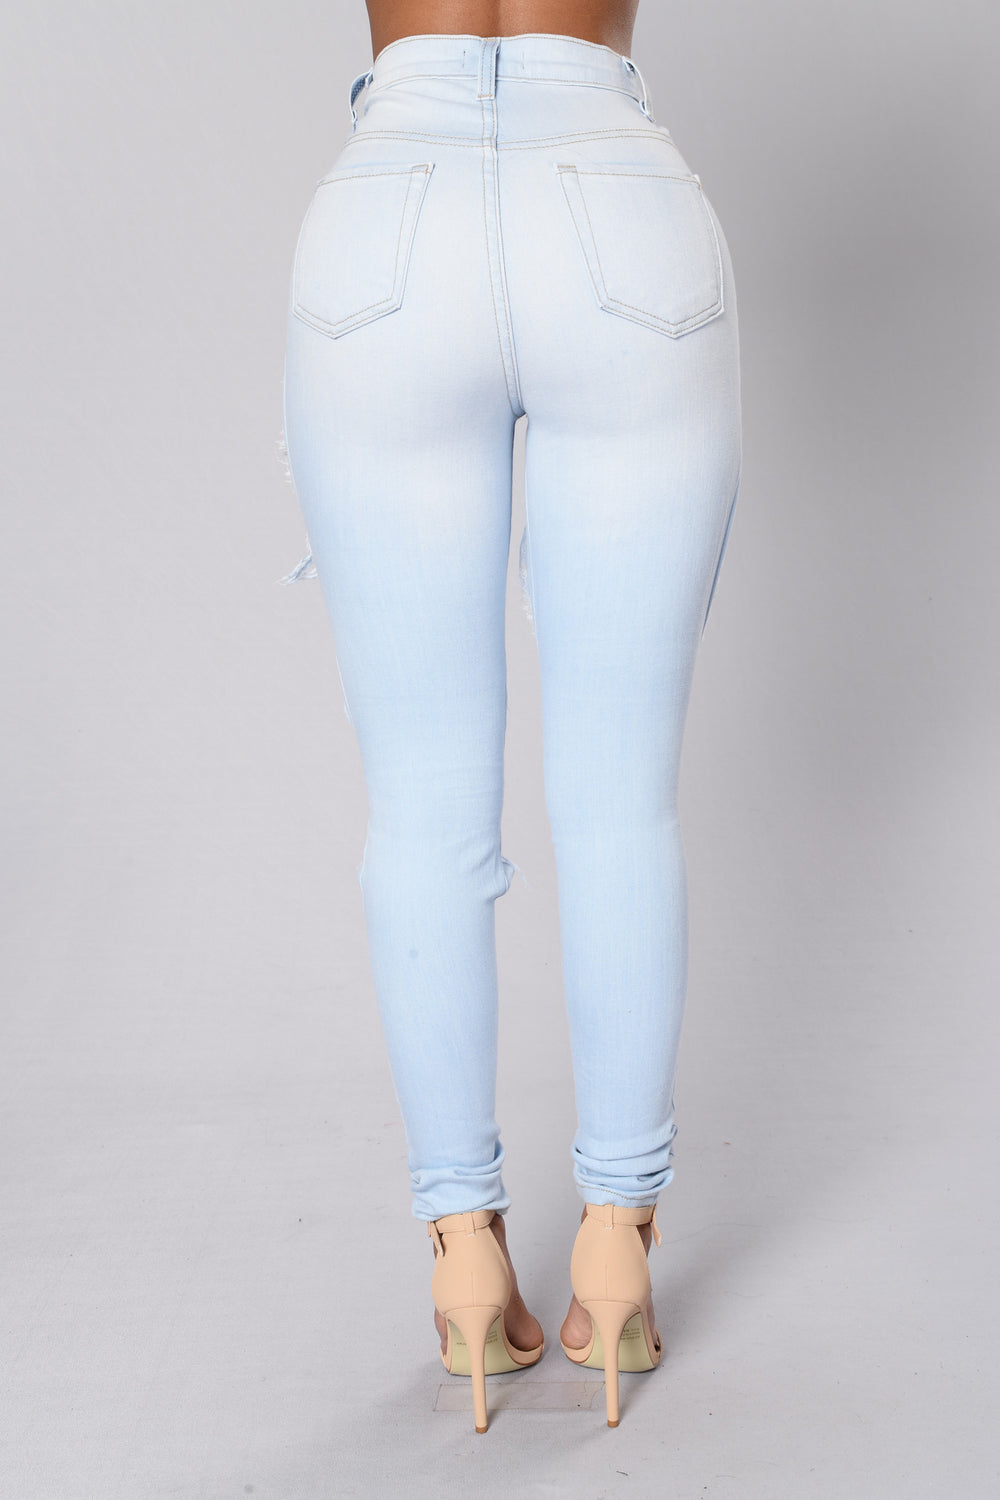 The new craze in jeans is light colored or stone washed jeans that can cost a fortune, but, if you know how to lighten the color of dark jeans, you can make these fashion forward pants yourself.